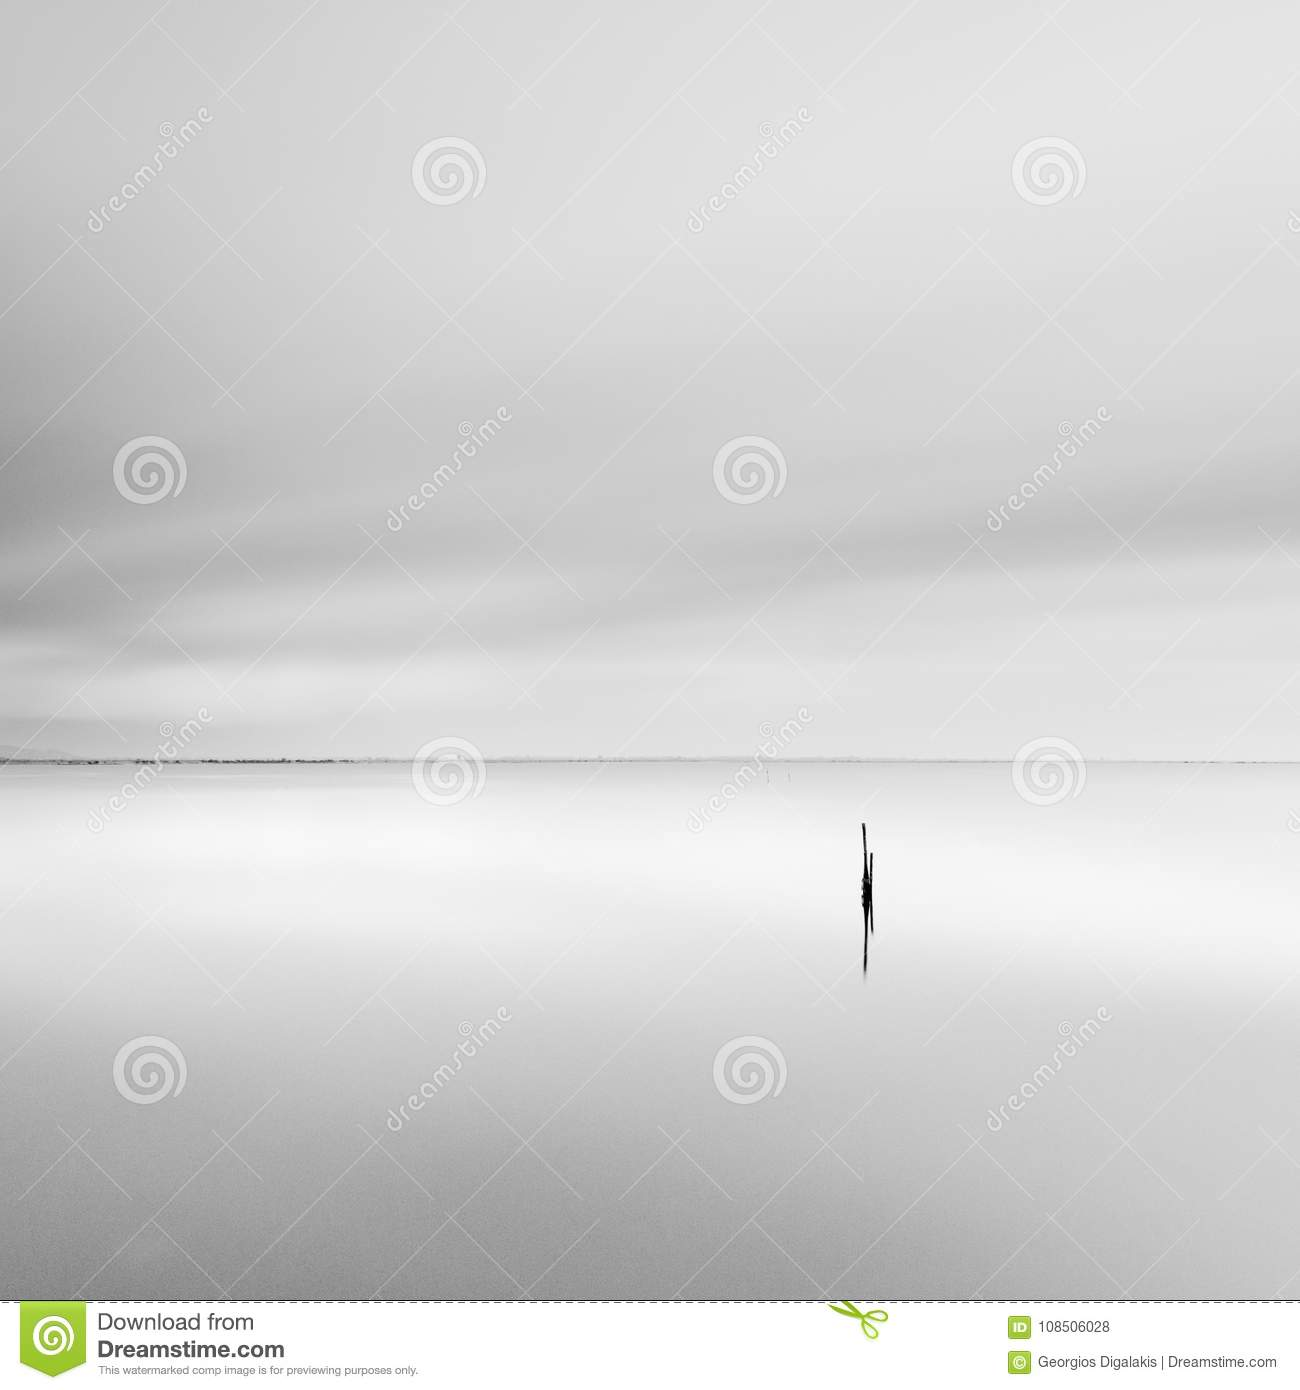 Minimal waterscape with pillar